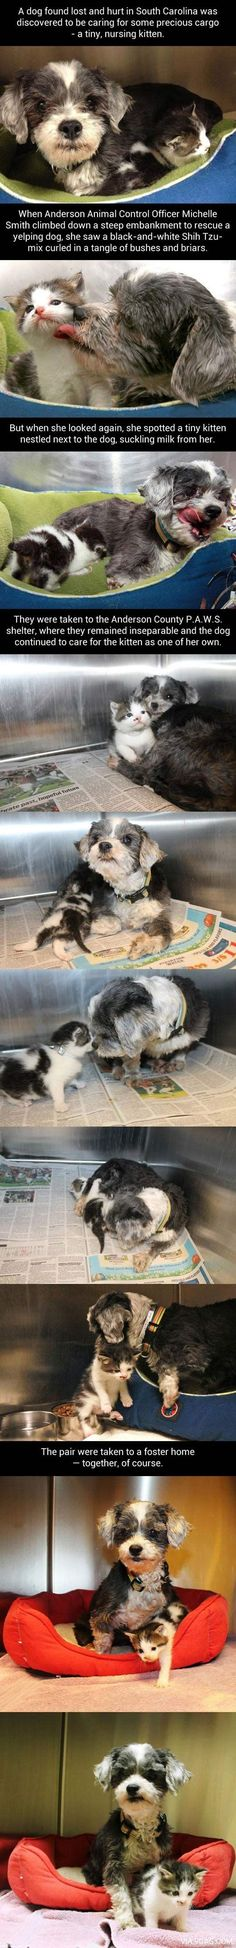 Lost dog finds little kitten and saves her…